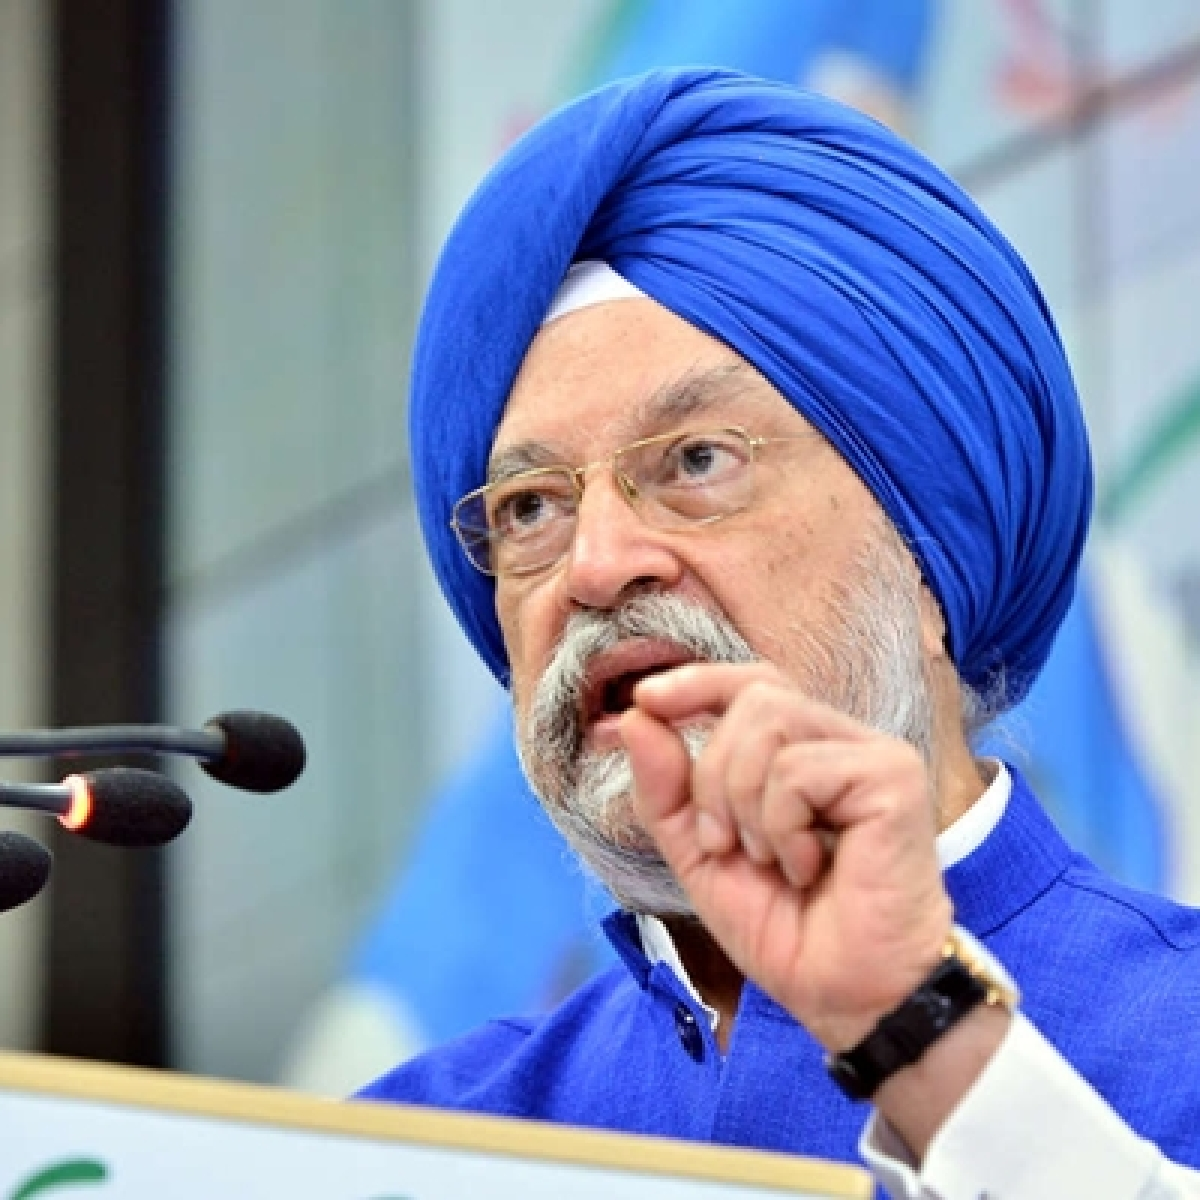 Flight services to resume from Monday for all states except West Bengal and Andhra Pradesh, says Hardeep Singh Puri